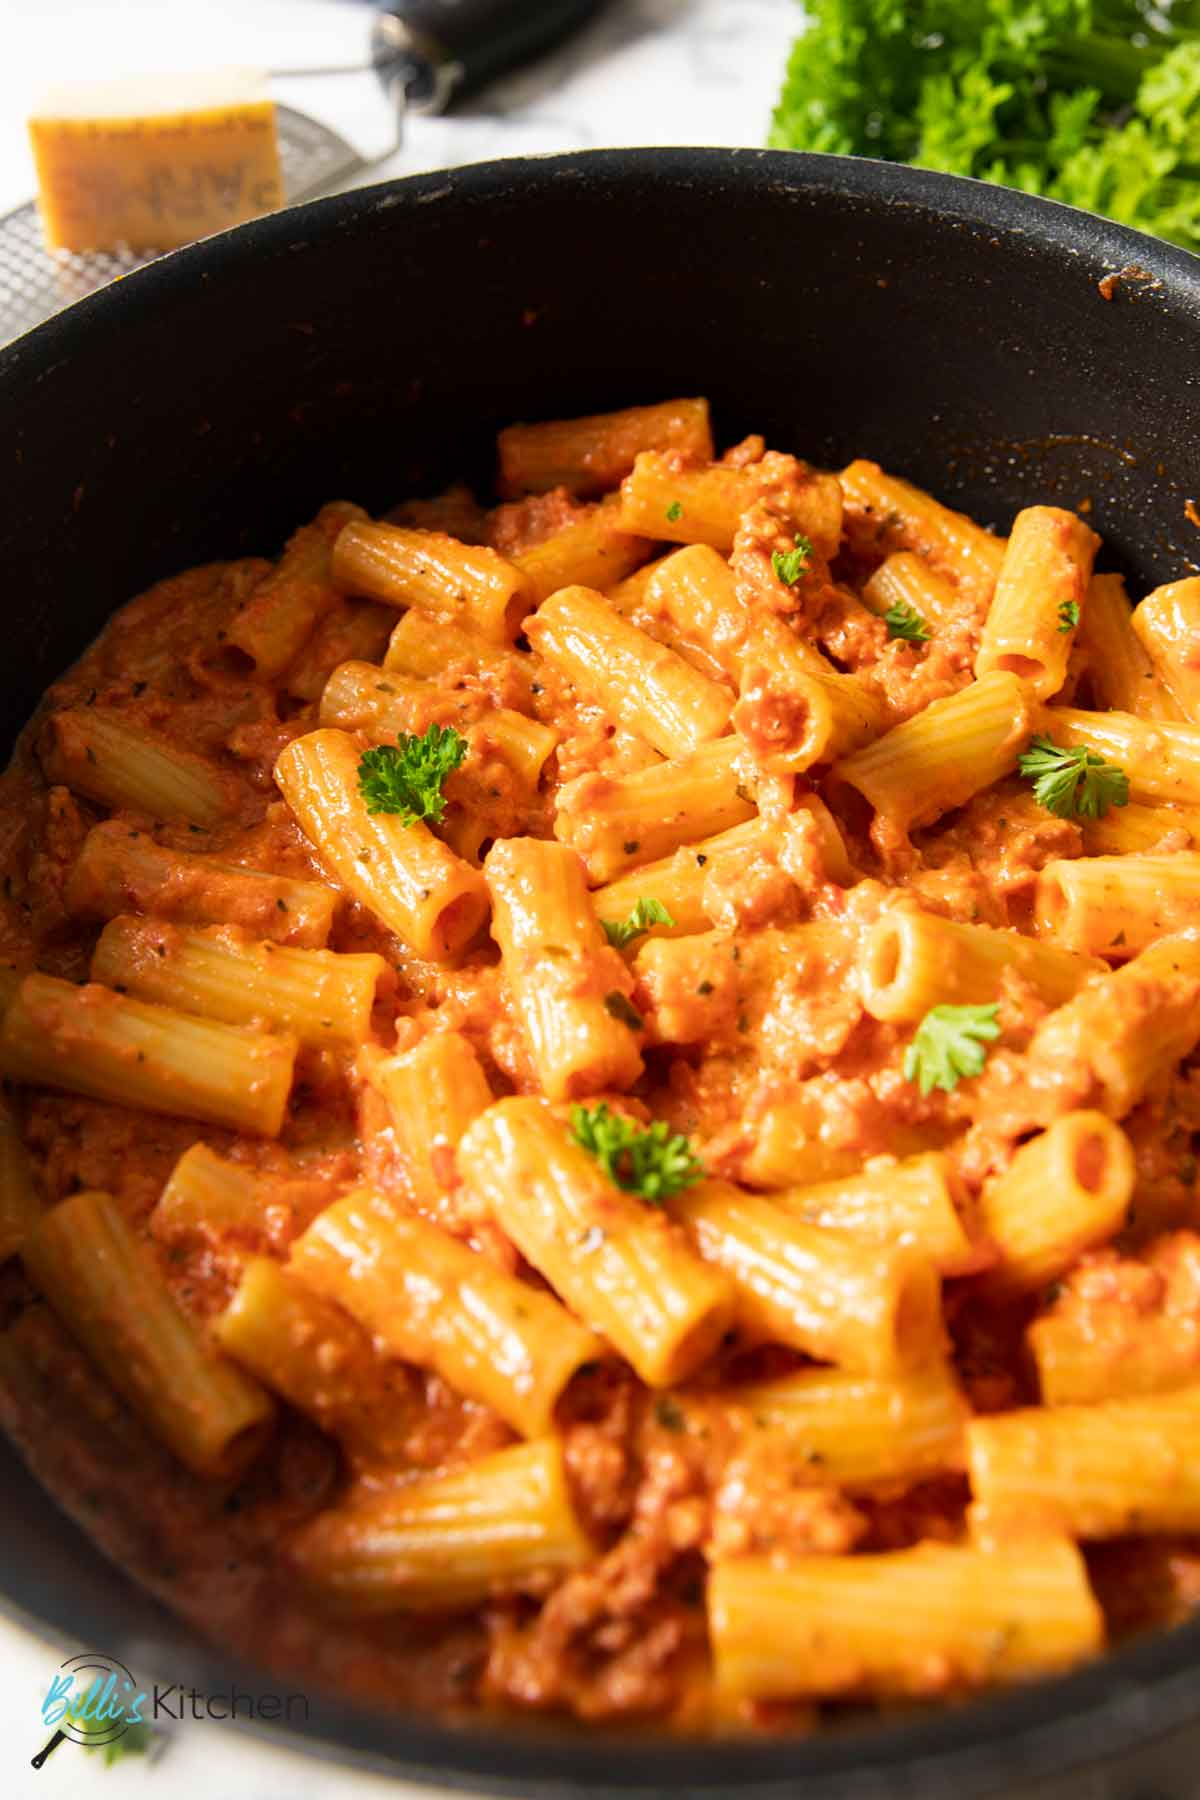 A close shot of a pan of spicy Italian sausage pasta, ready for serving.